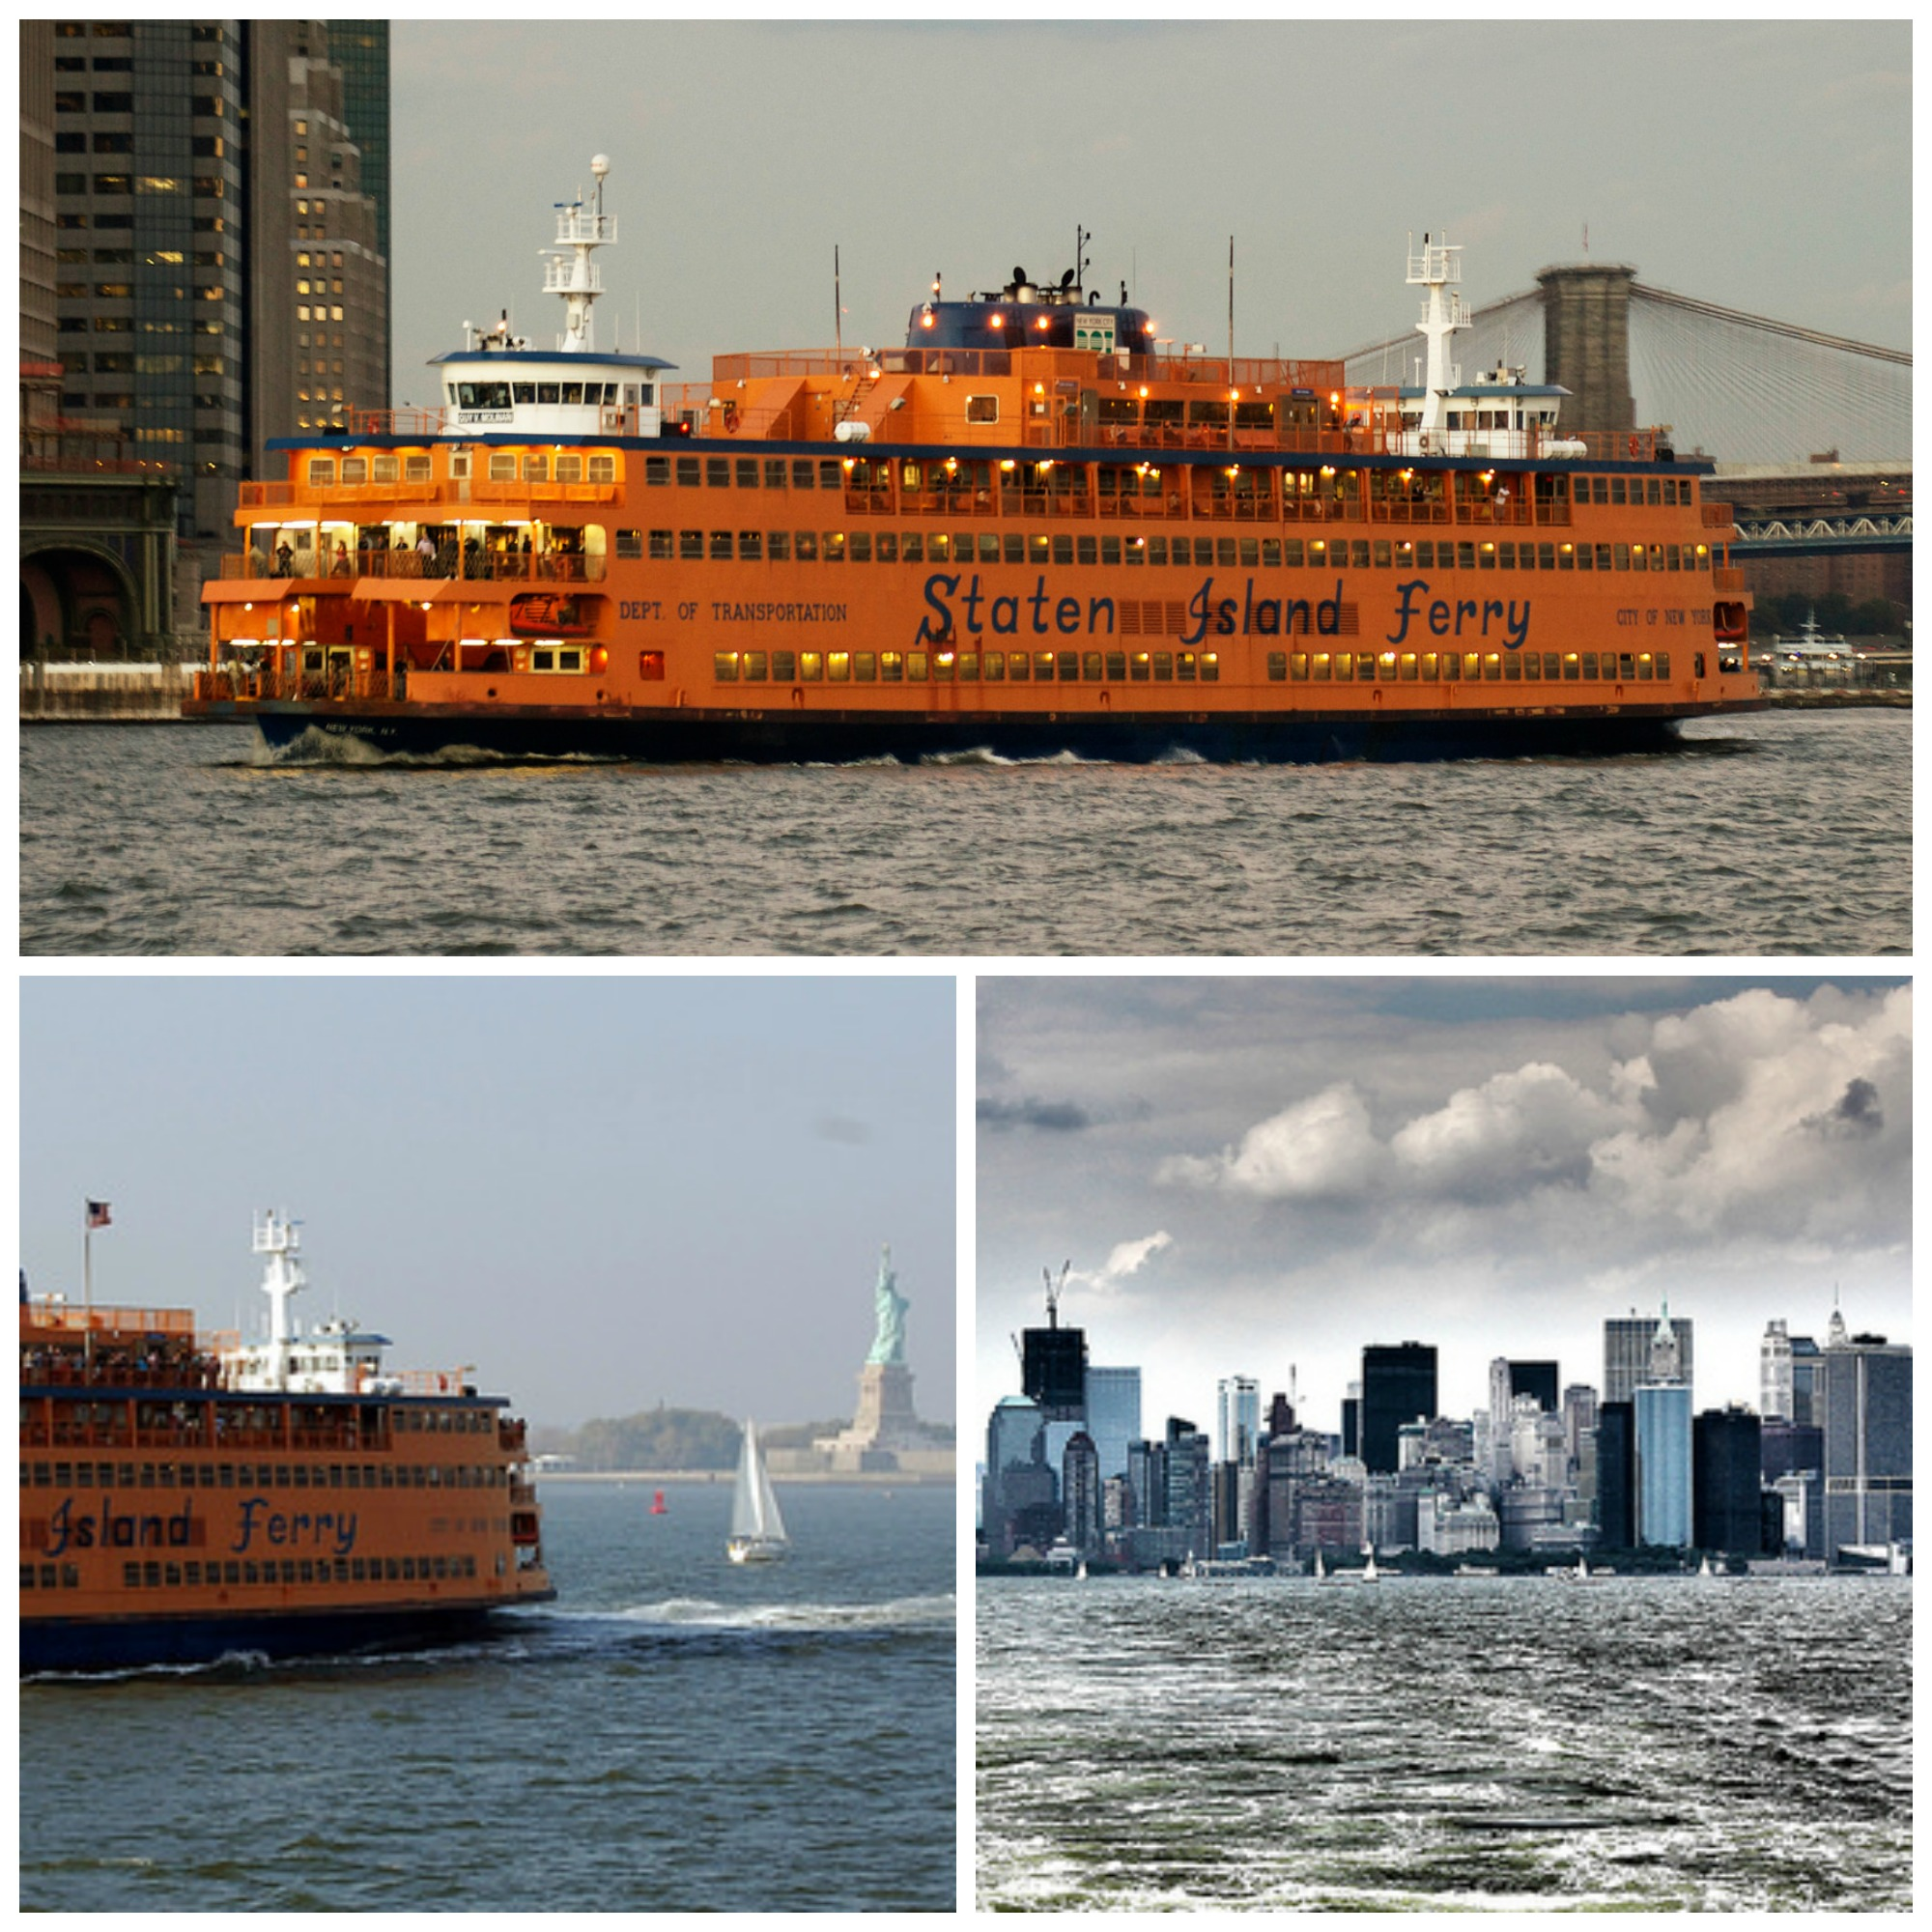 Staten Island Ferry   © Phil Dolby/Flickr, Staten Island Ferry and Statue of Liberty   © Henning Klokkeråsen/Flickr, NYC from Staten Island Ferry 2011   © Mobilus In Mobili/Flickr